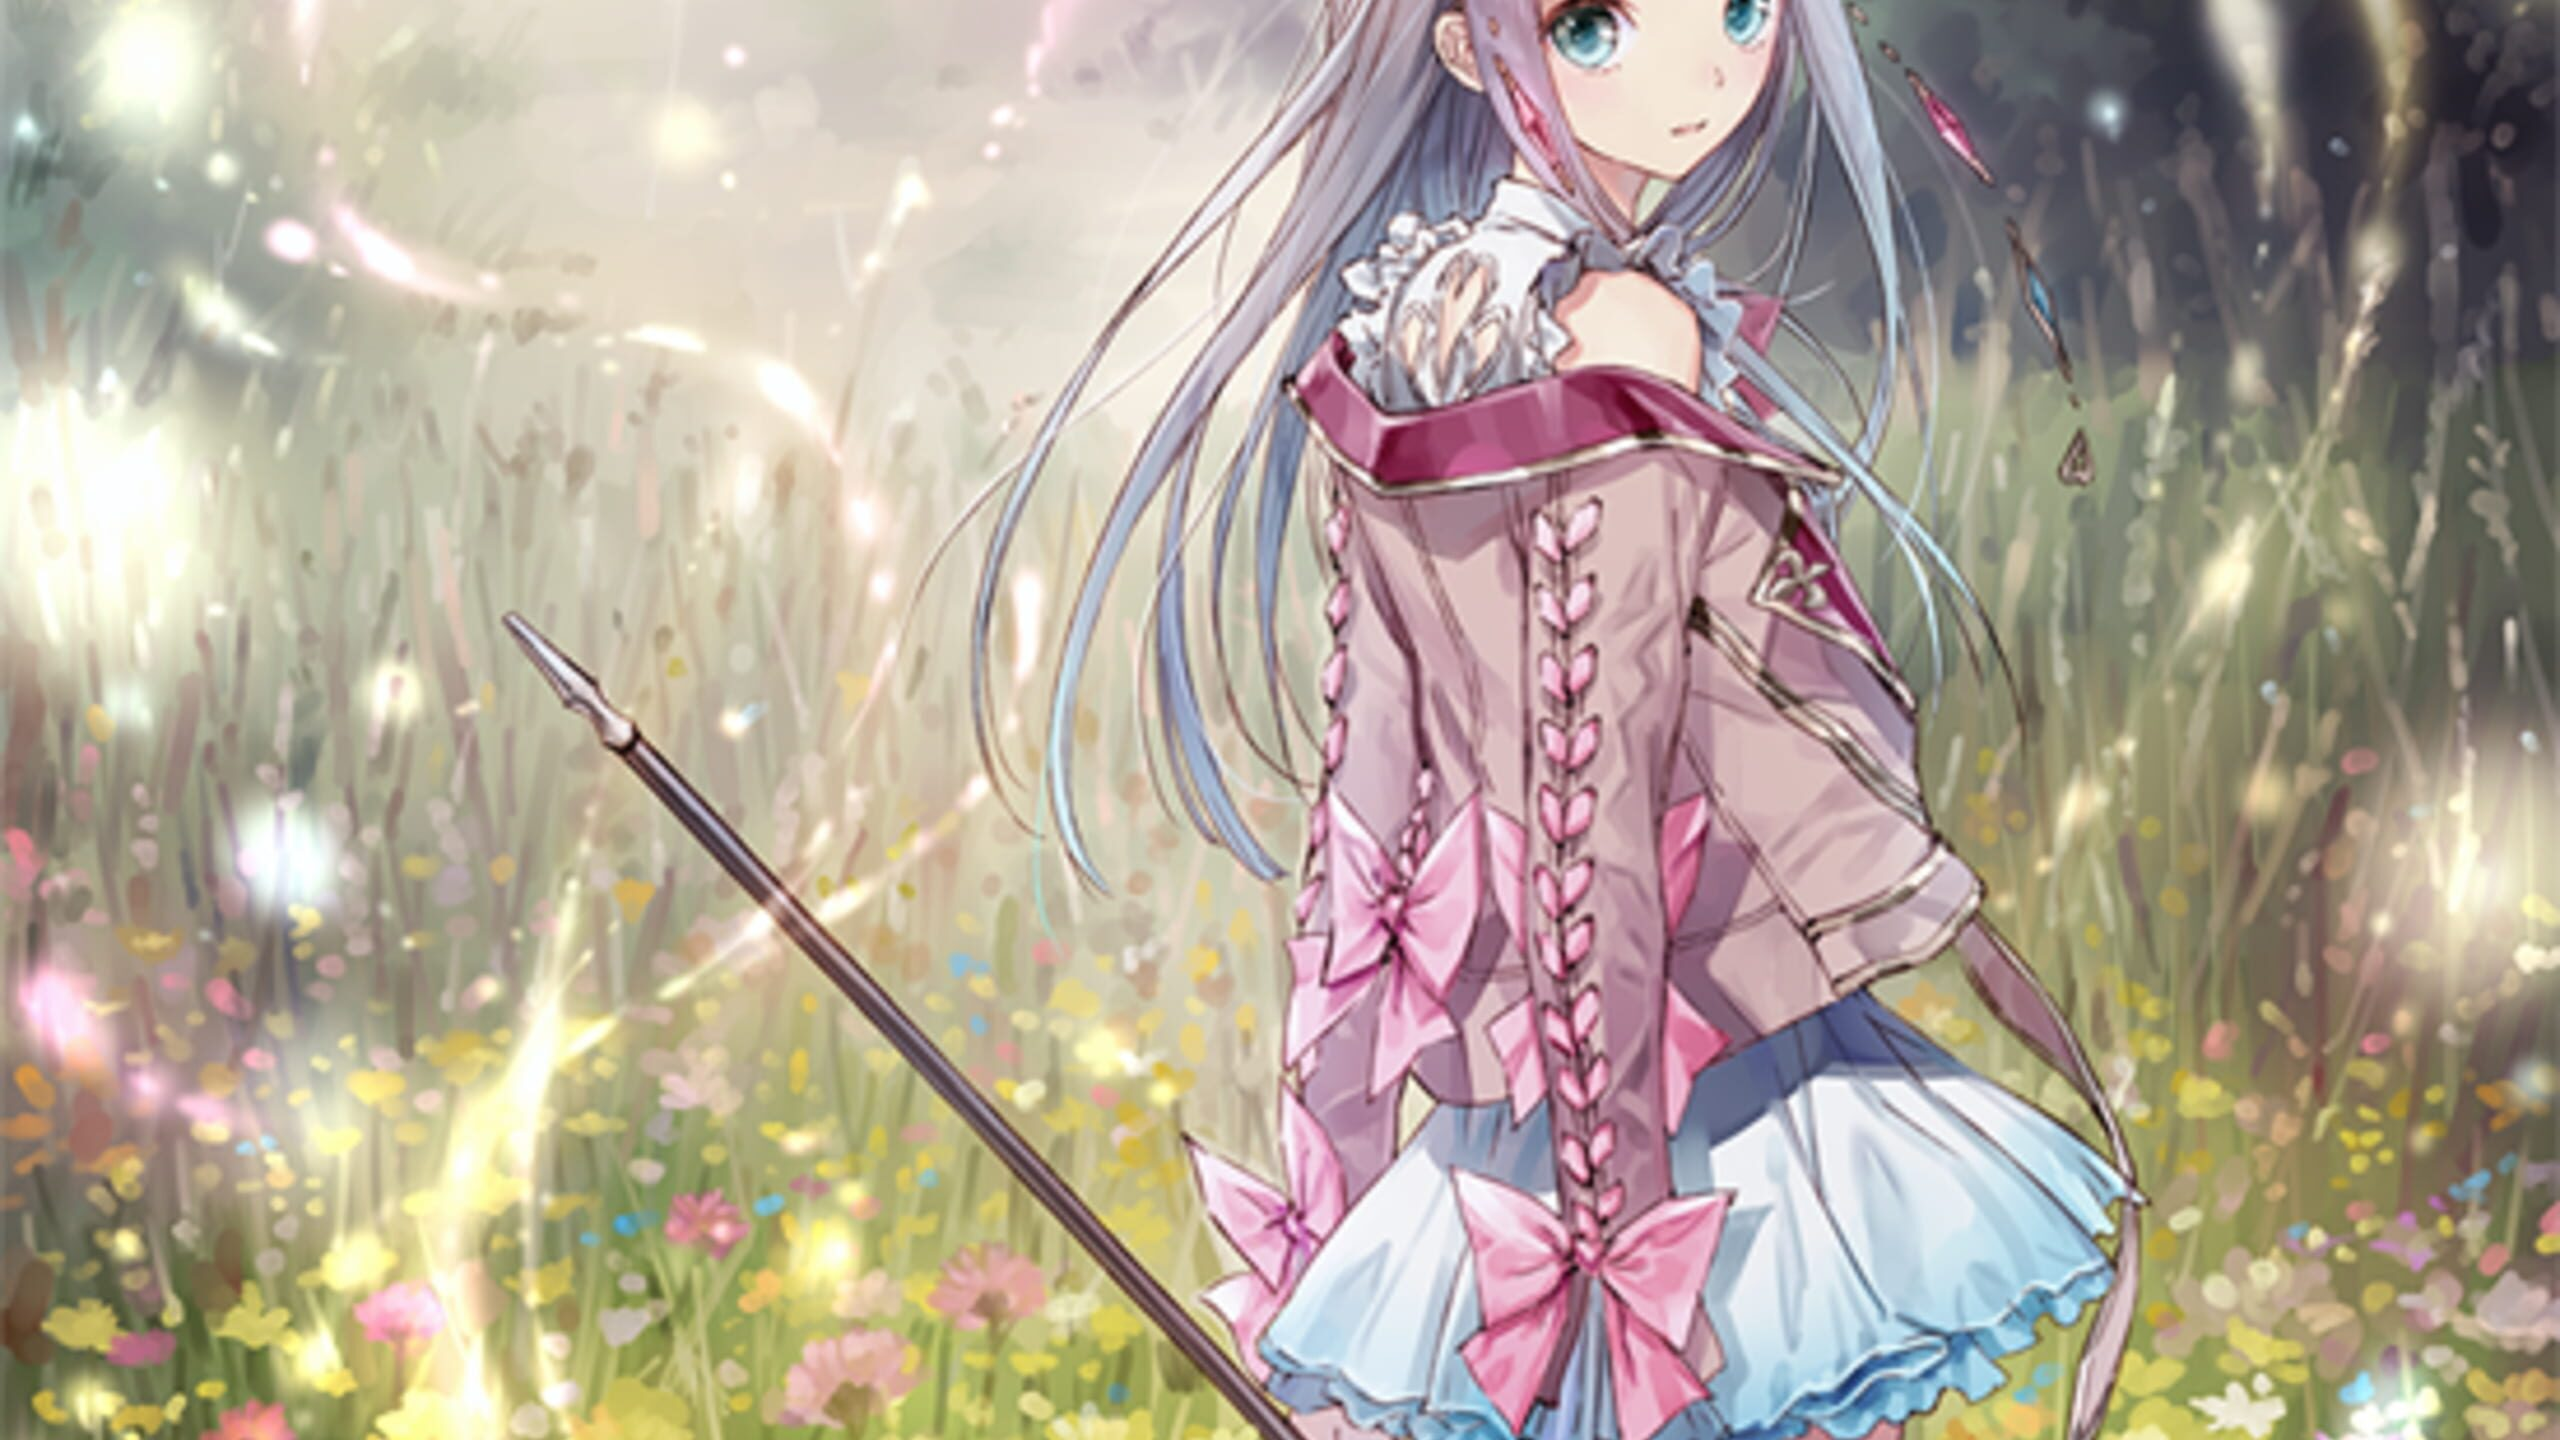 game cover art for Atelier Lulua: The Scion of Arland